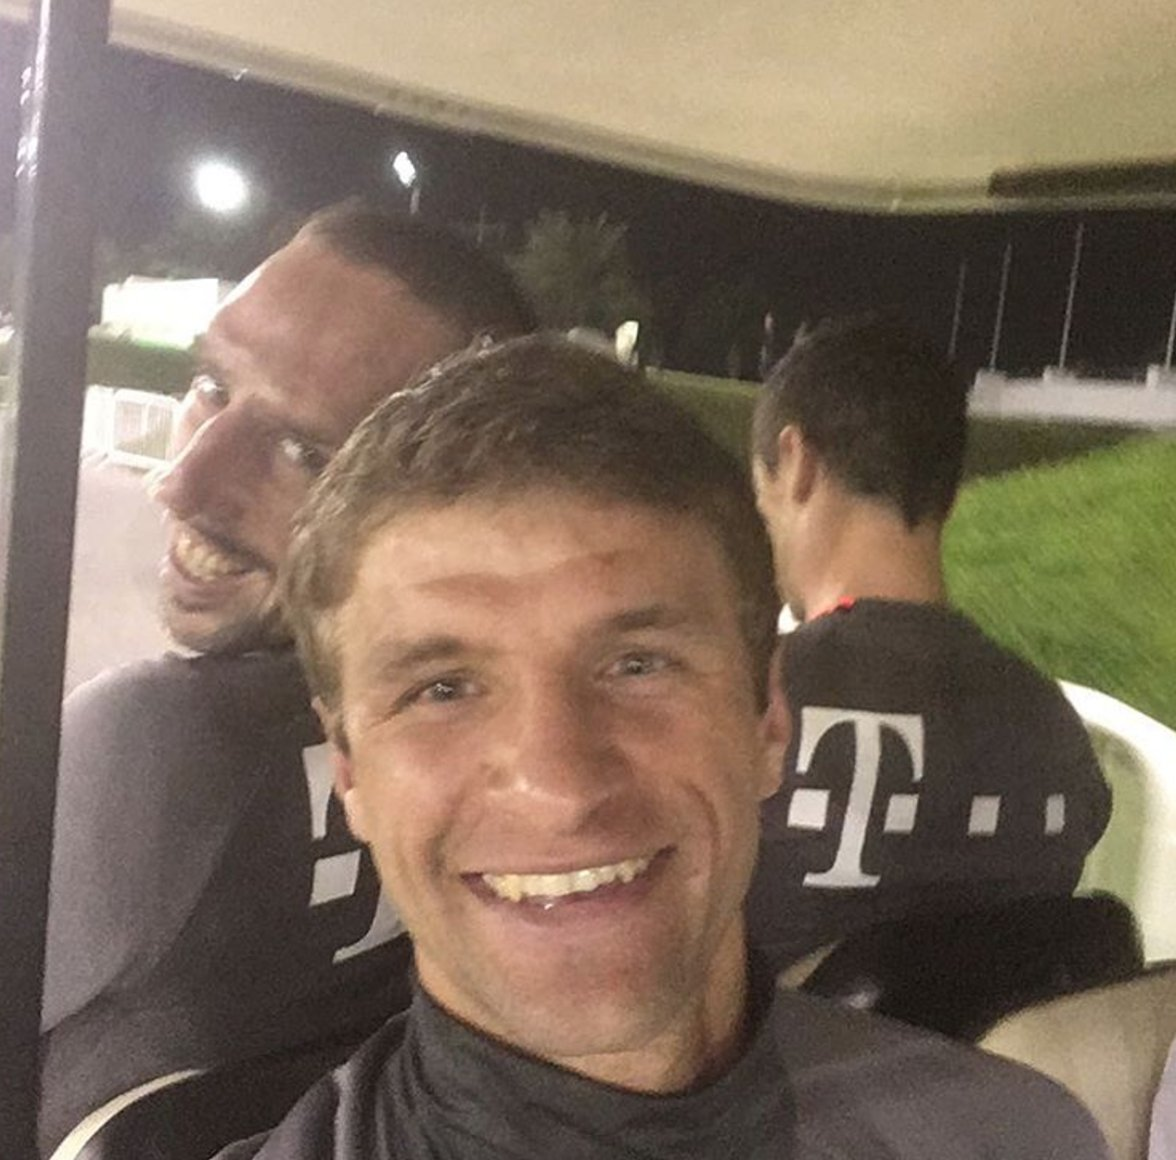 Müller and 👑!  #FCBayernSelfie https://t.co/7gp1X92H3M